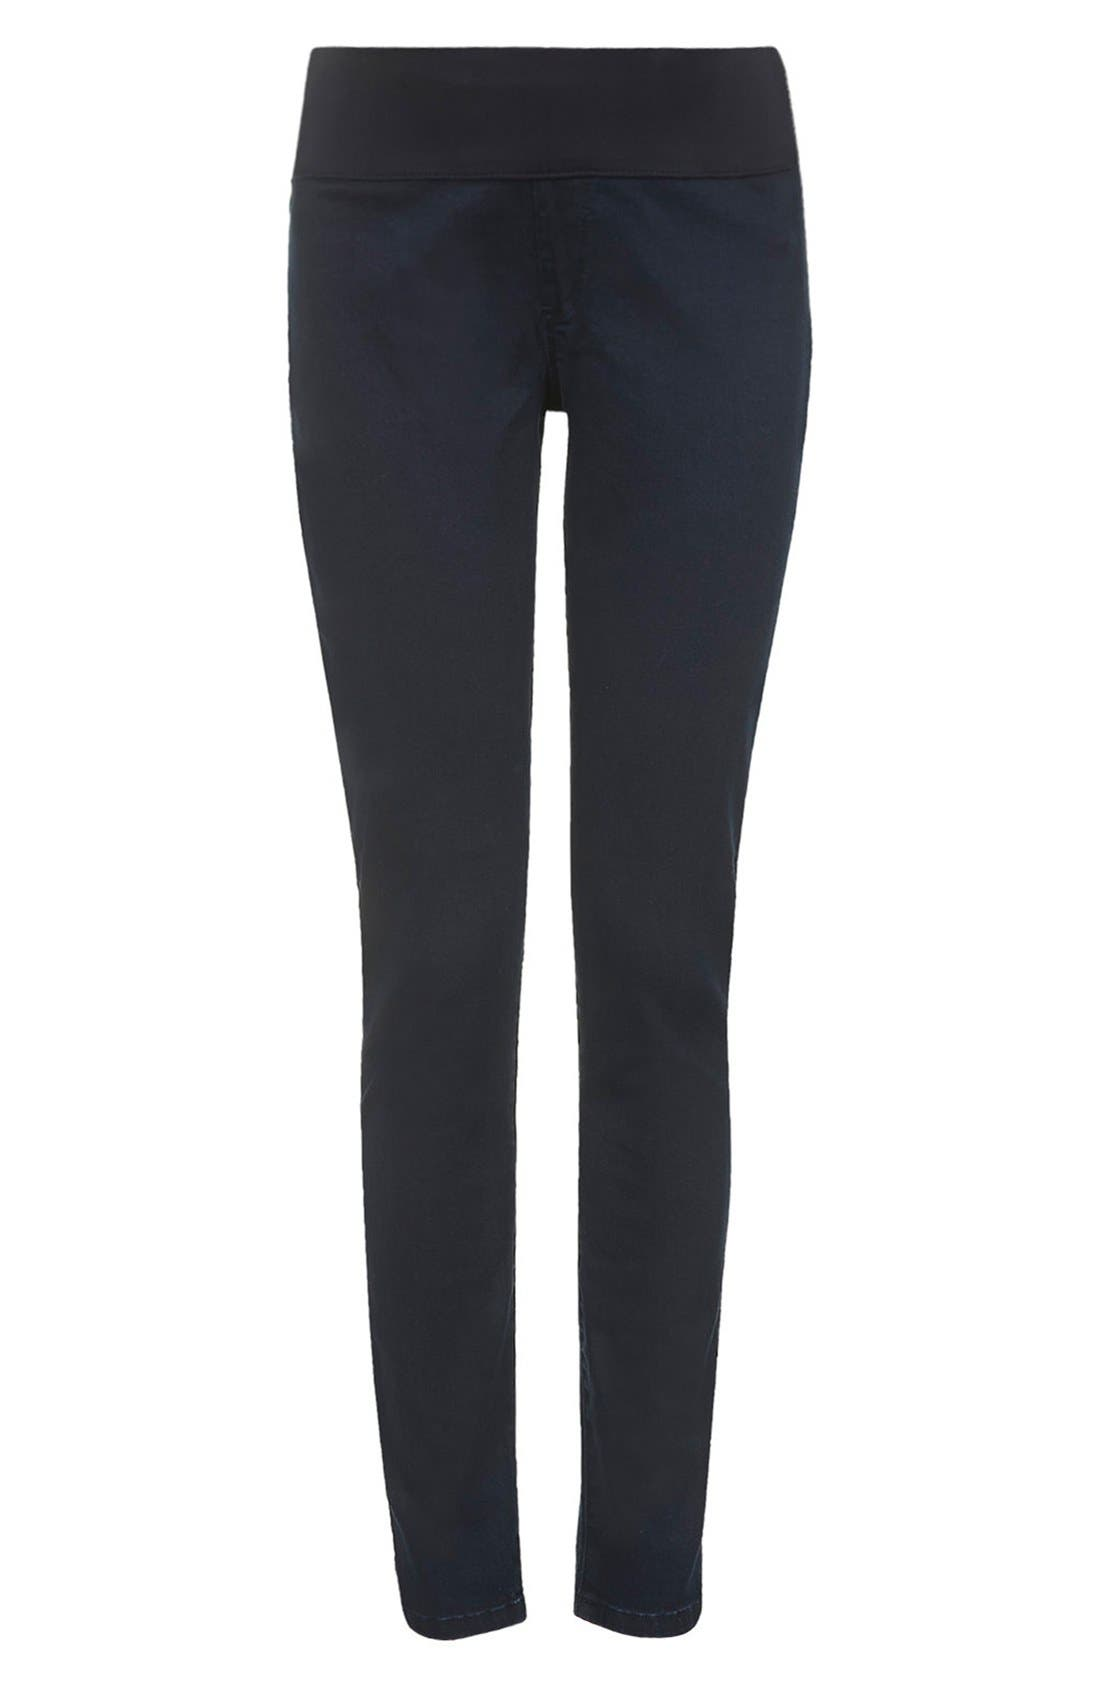 Alternate Image 3  - Topshop Moto 'Joni' Maternity Skinny Jeans (Navy) (Regular & Short)